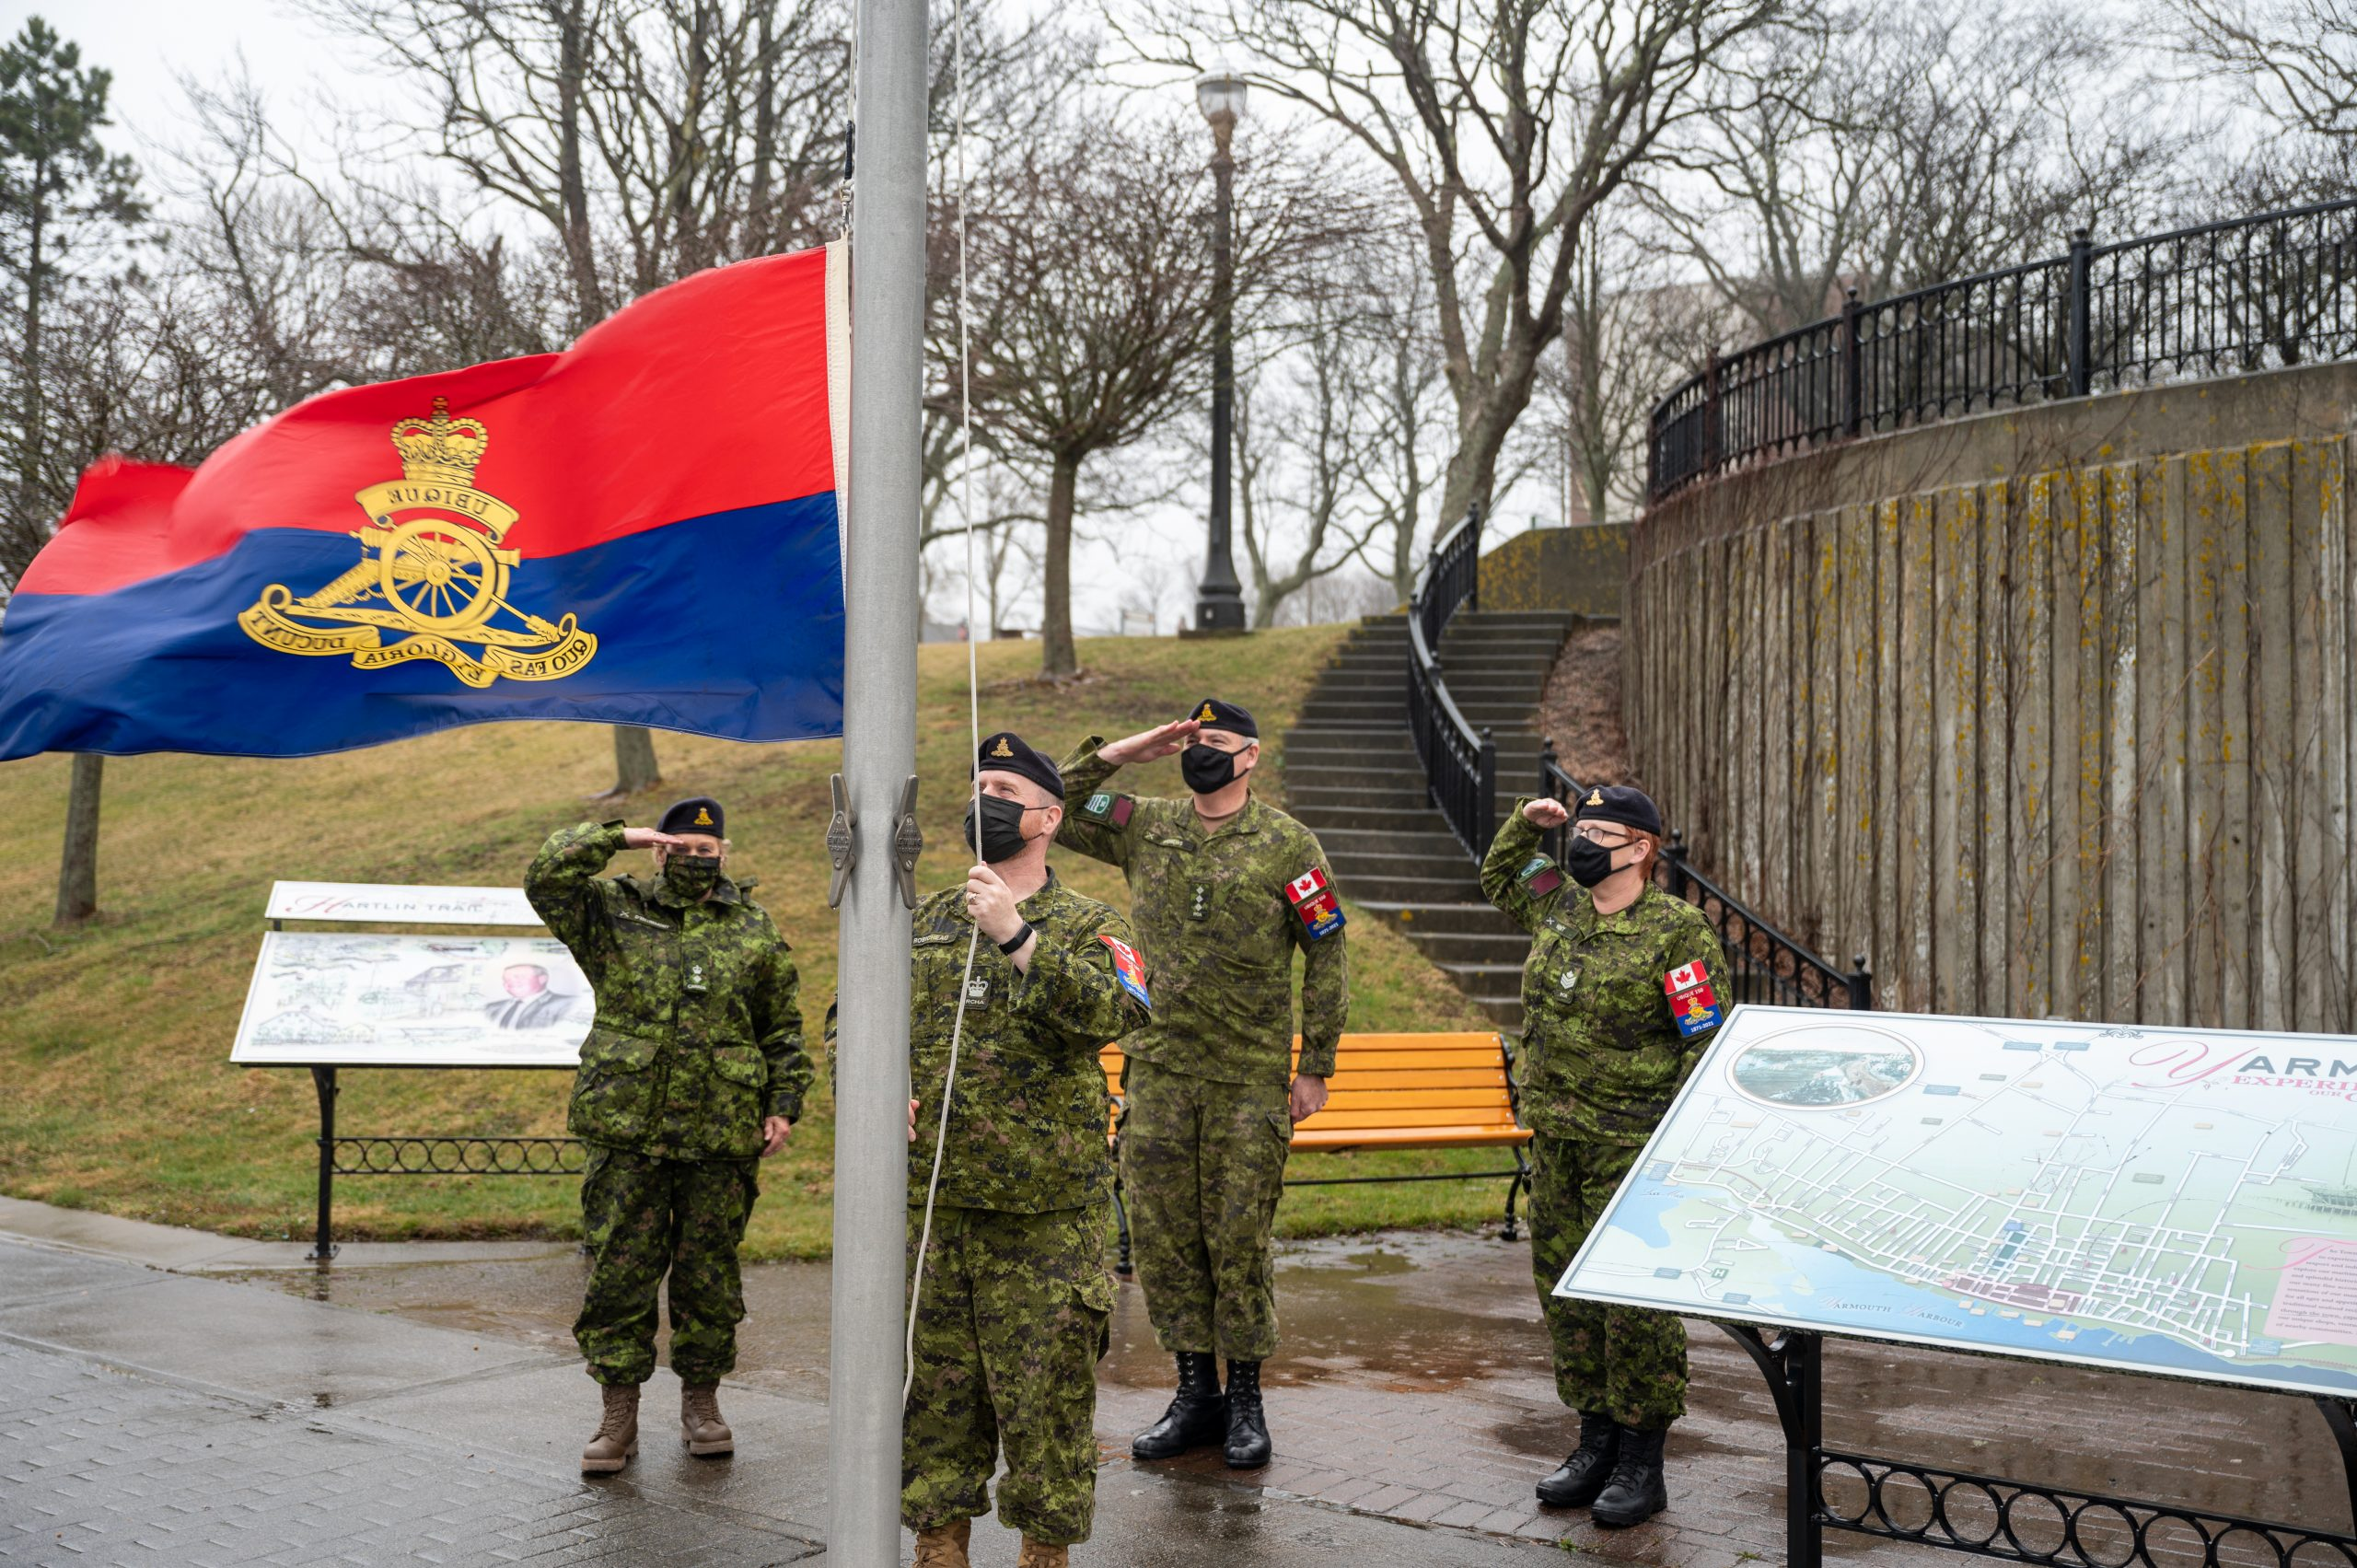 : Members of 84th Independent Field Battery, RCA raise The Royal Regiment of Canadian Artillery Flag at the Yarmouth Town Hall, NS.